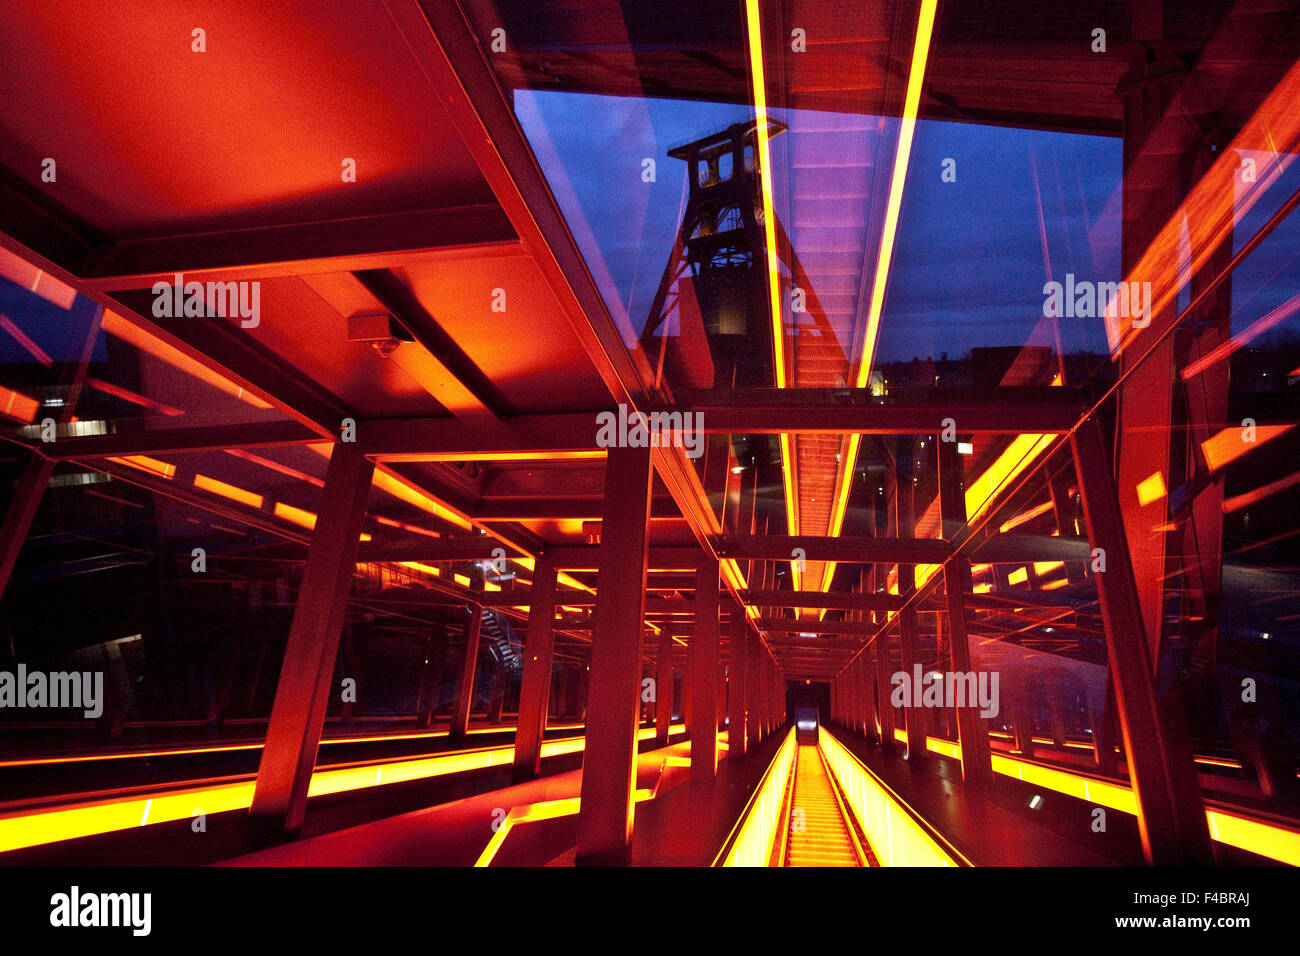 Gangway, Zollverein, Essen, Germany - Stock Image